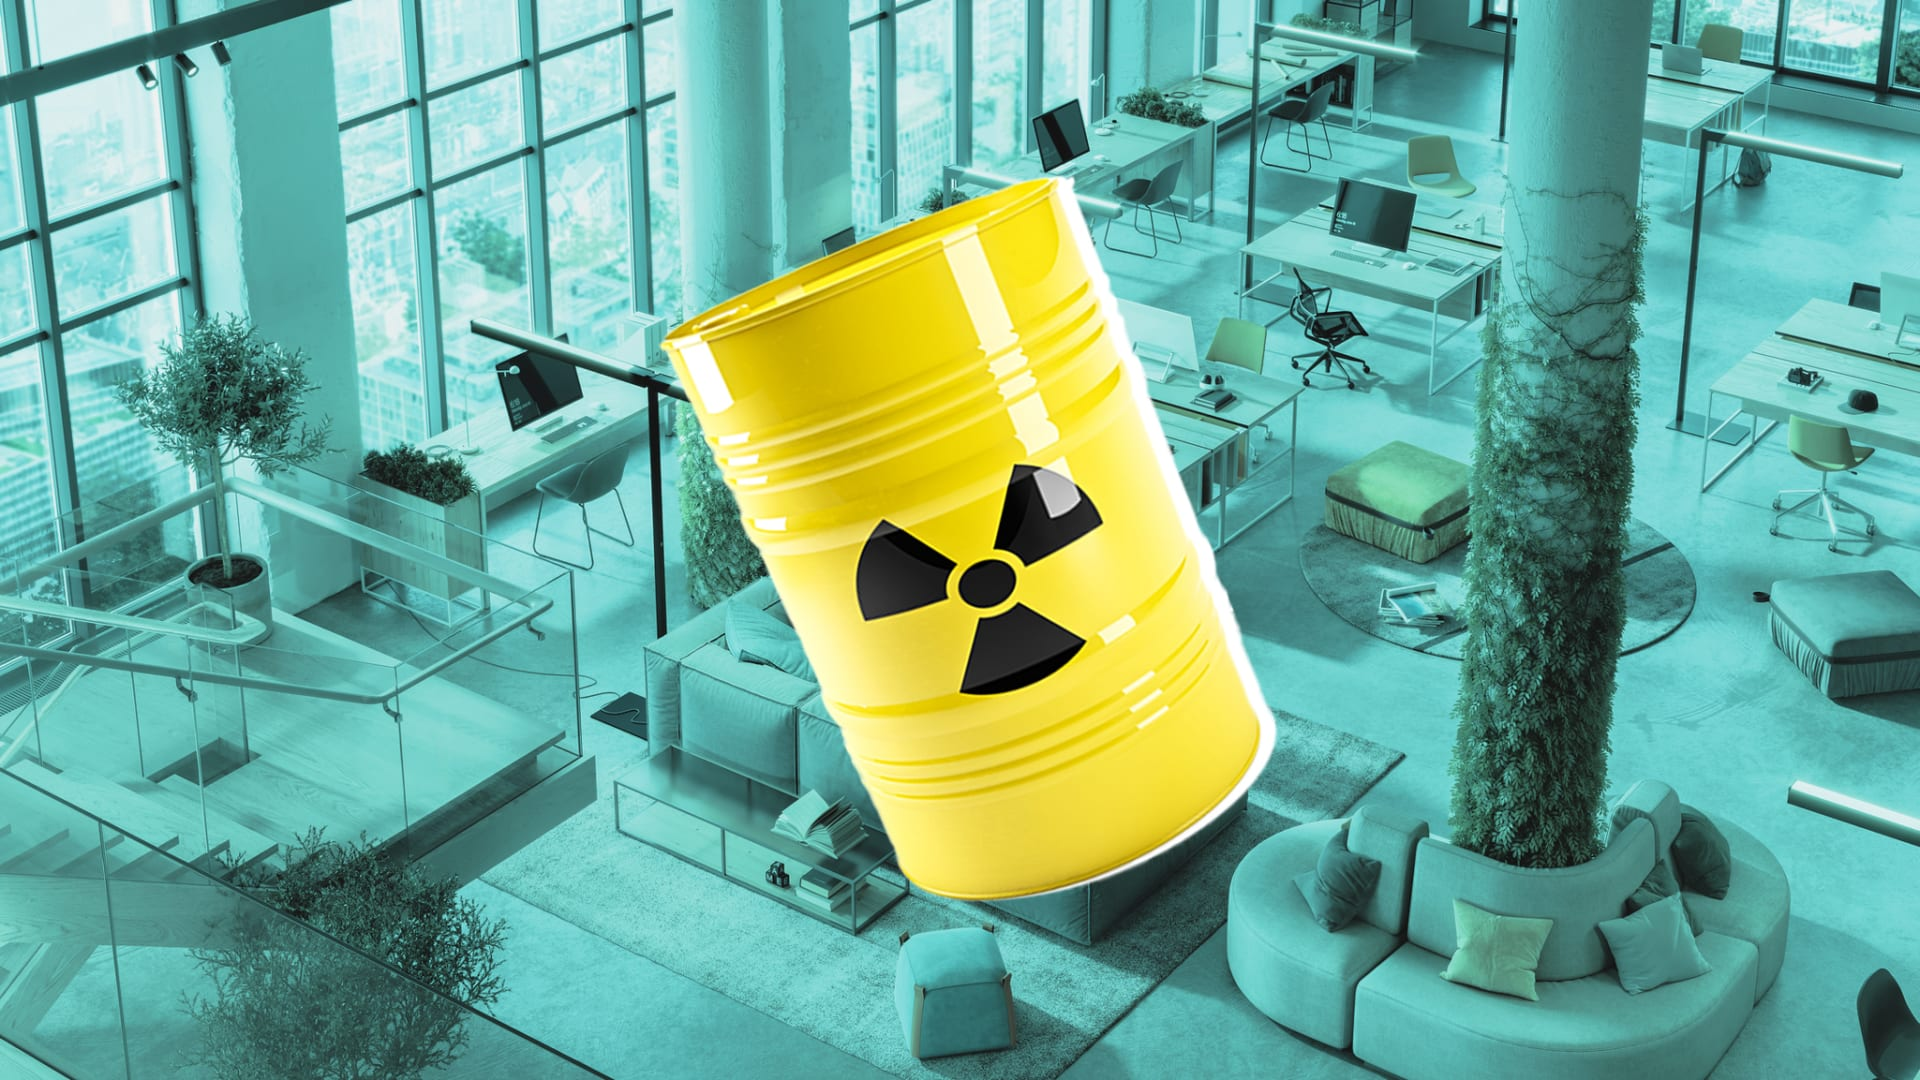 How to Identify and Eliminate Toxicity in a Working Environment